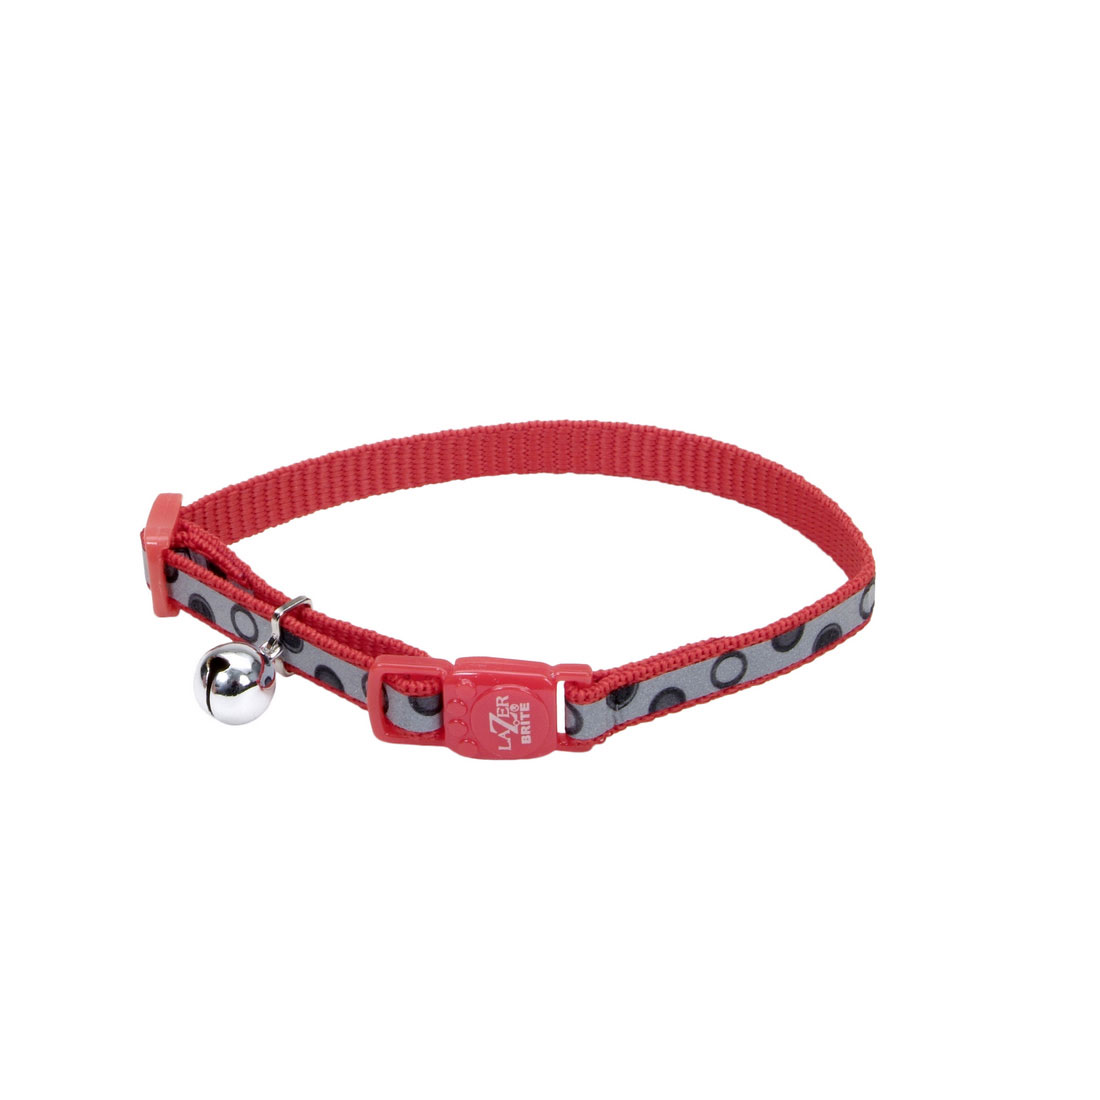 Lazer Brite Reflective Adjustable Breakaway Cat Collar, Red Bubbles, 3/8-in (Size:  3/8-in, Color:  Red Bubbles) Image